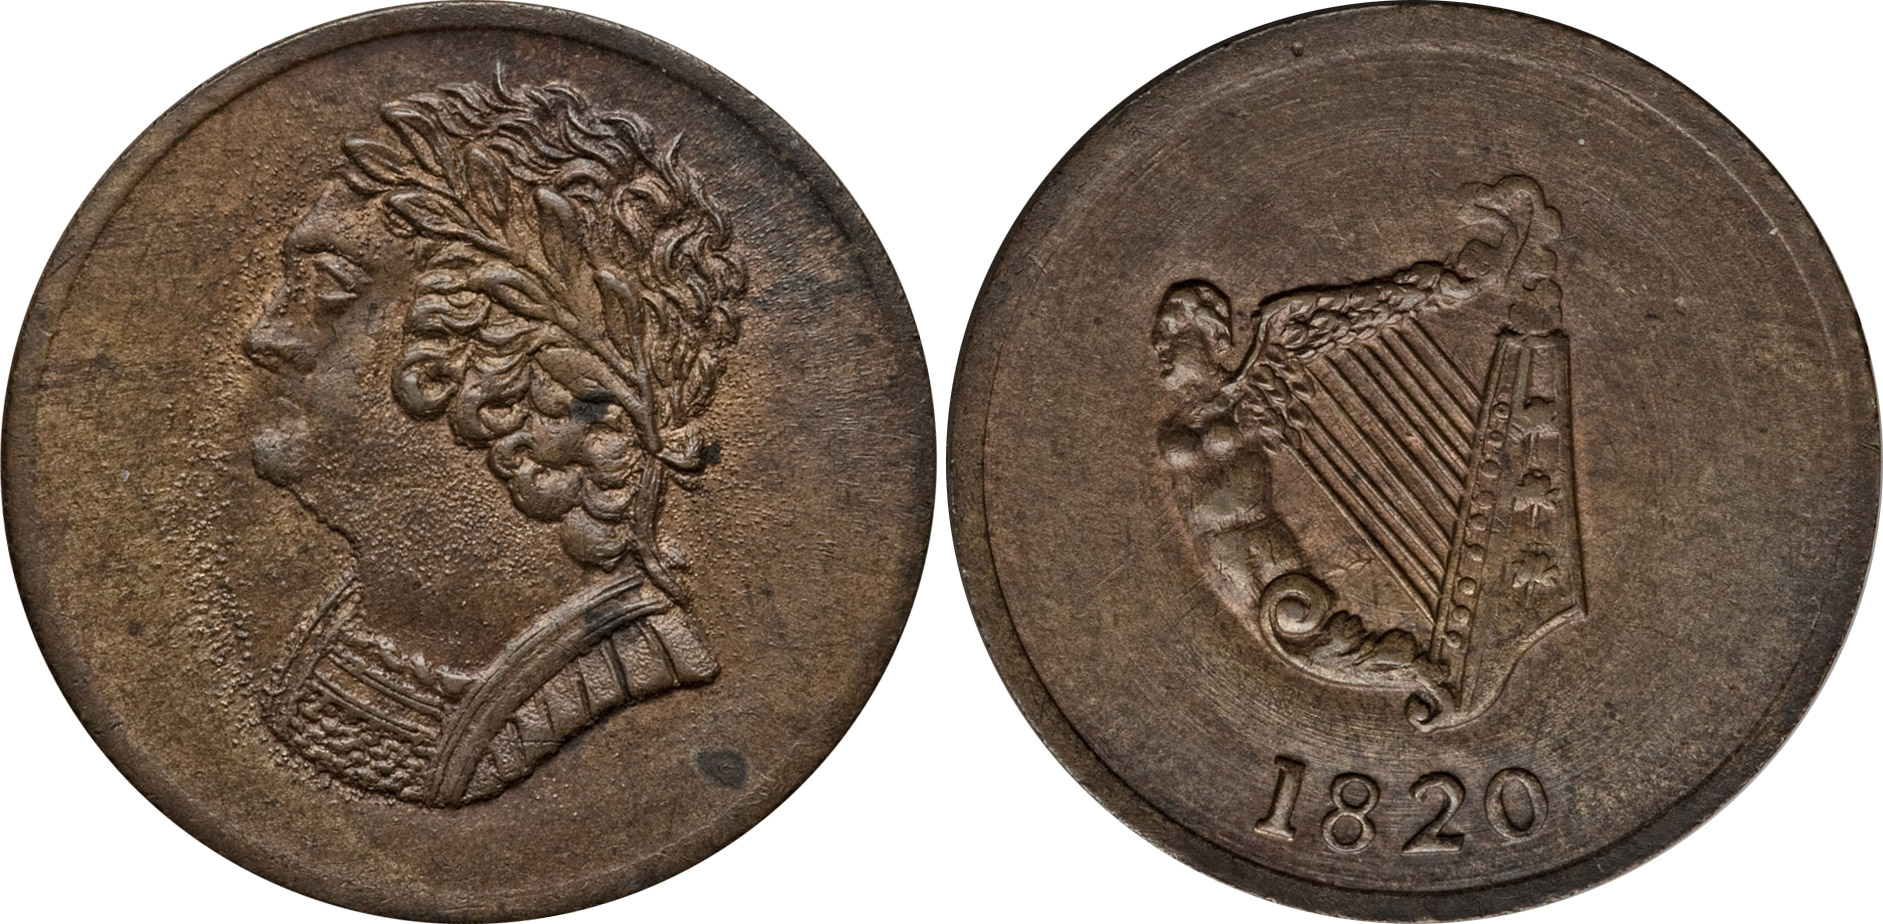 Bust and Harp - 1/2 penny 1820